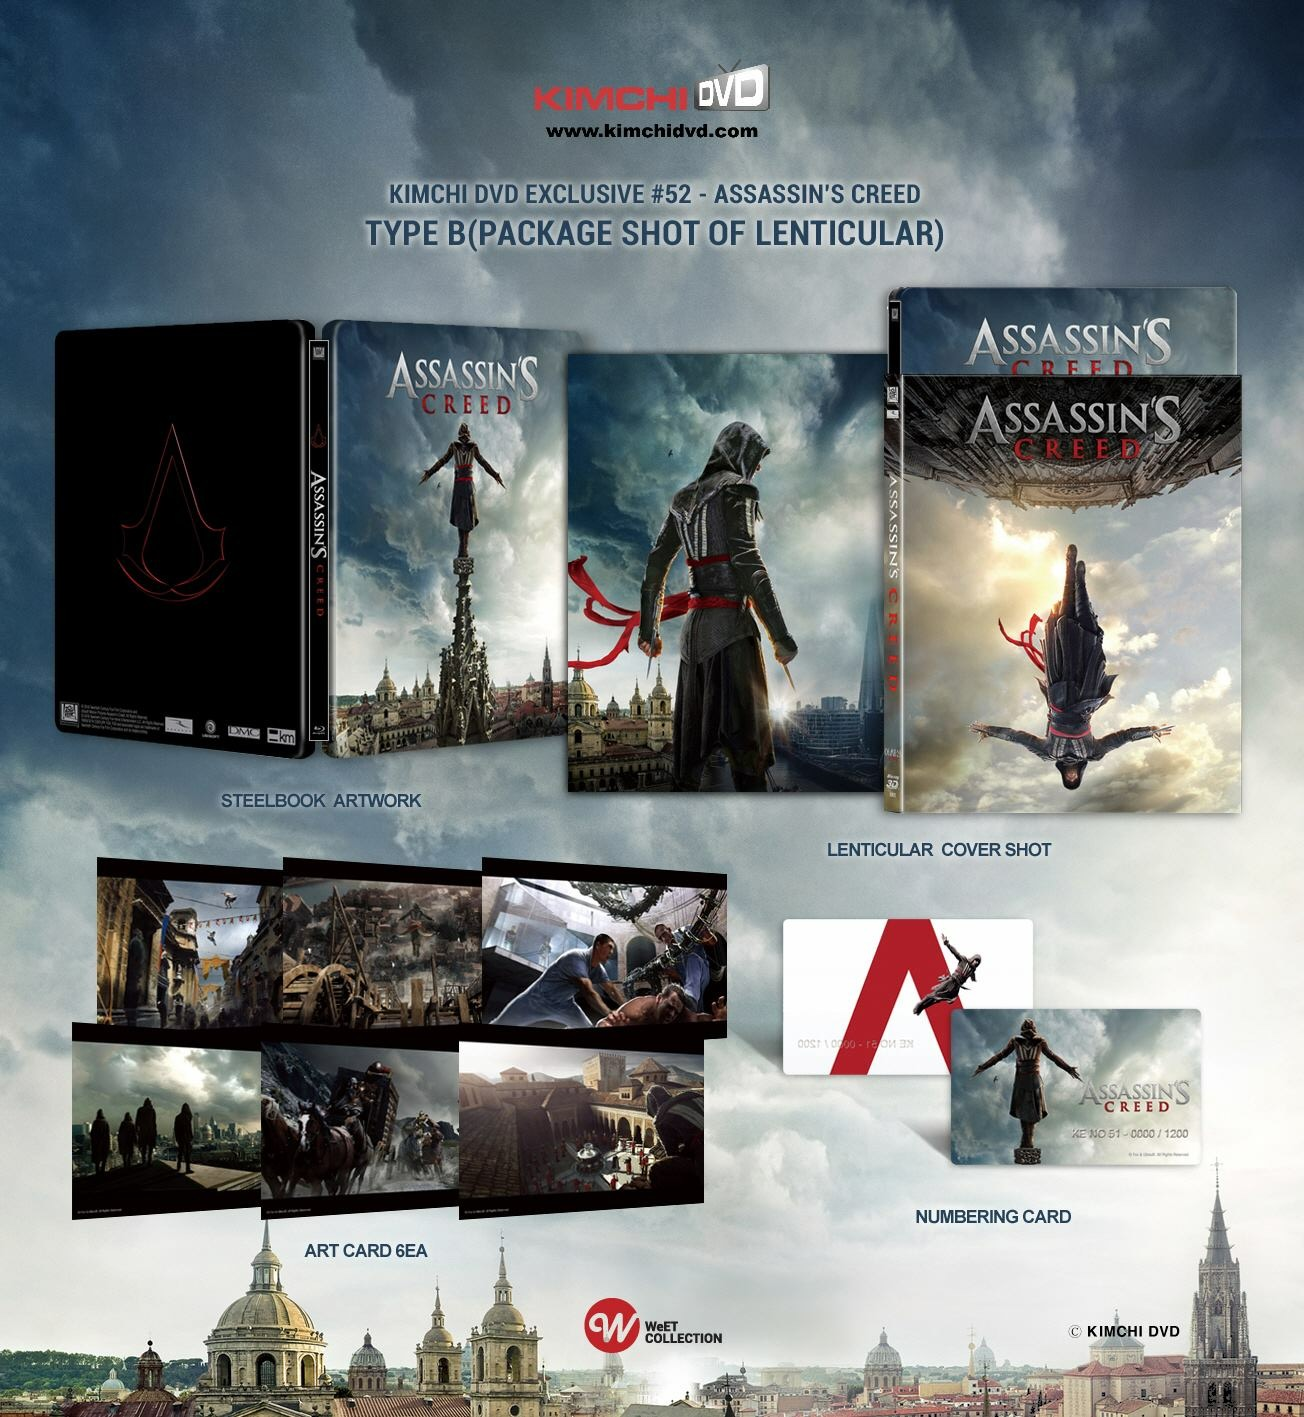 Assassin's Creed steelbook kimchidvd 2